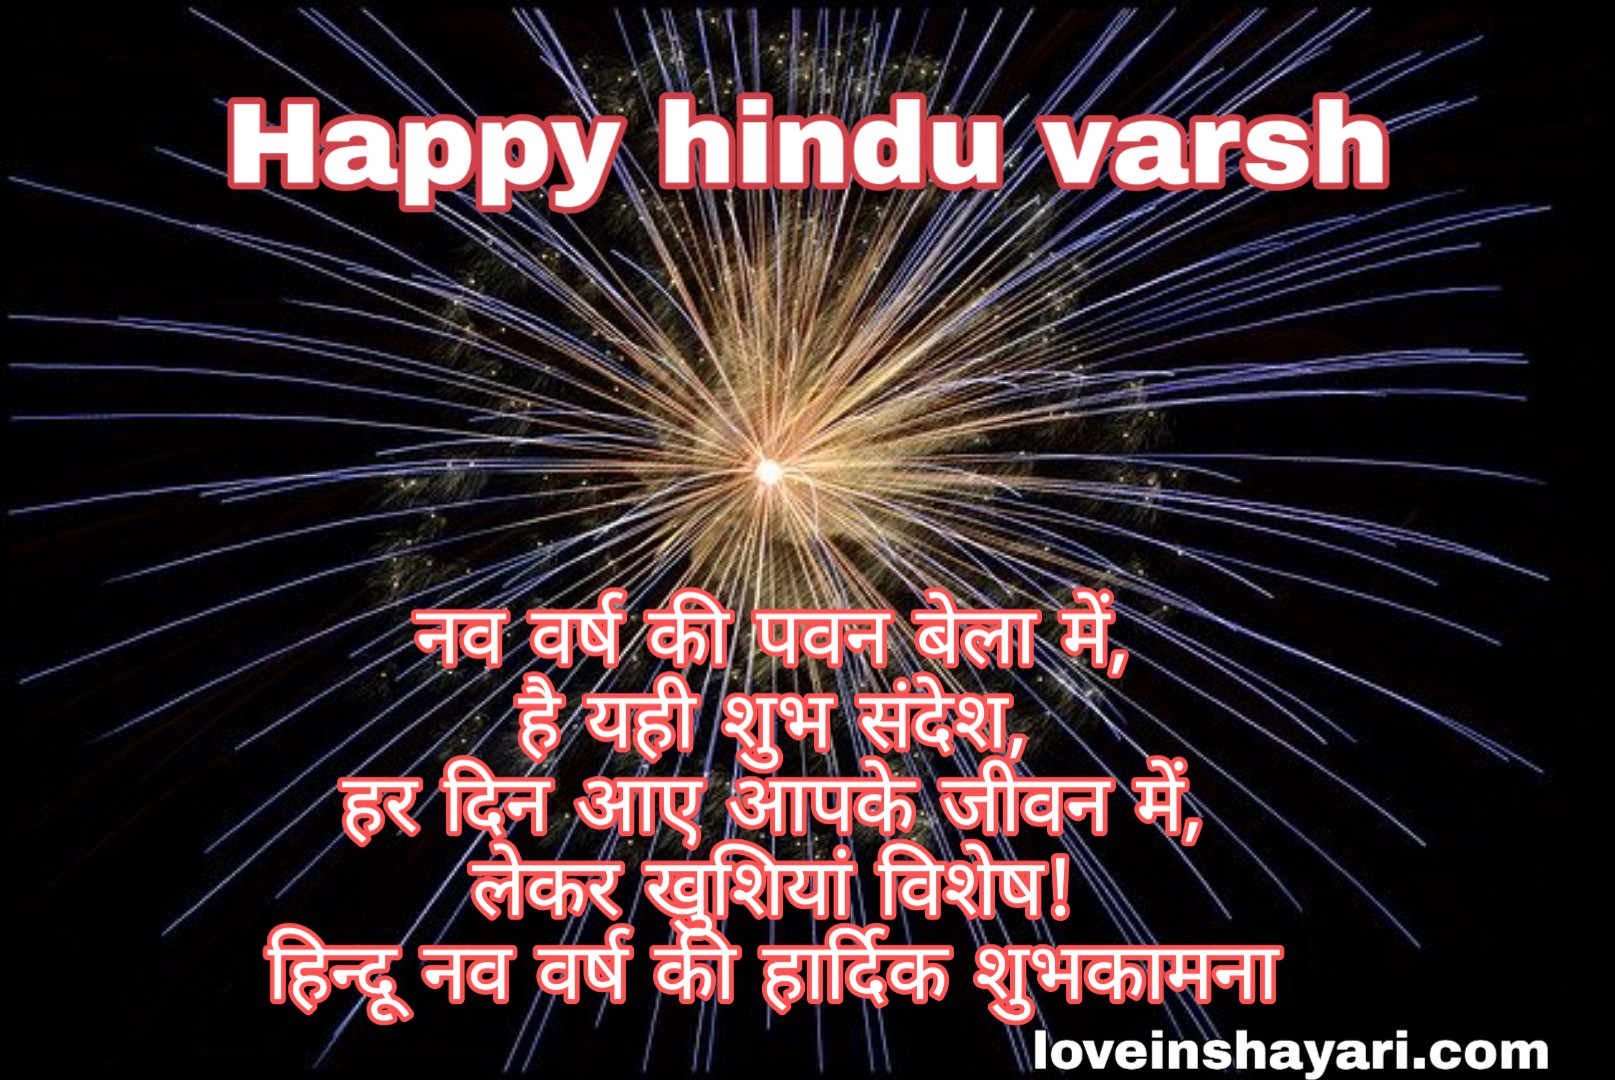 Hindu nav varsh wishes shayari images quotes